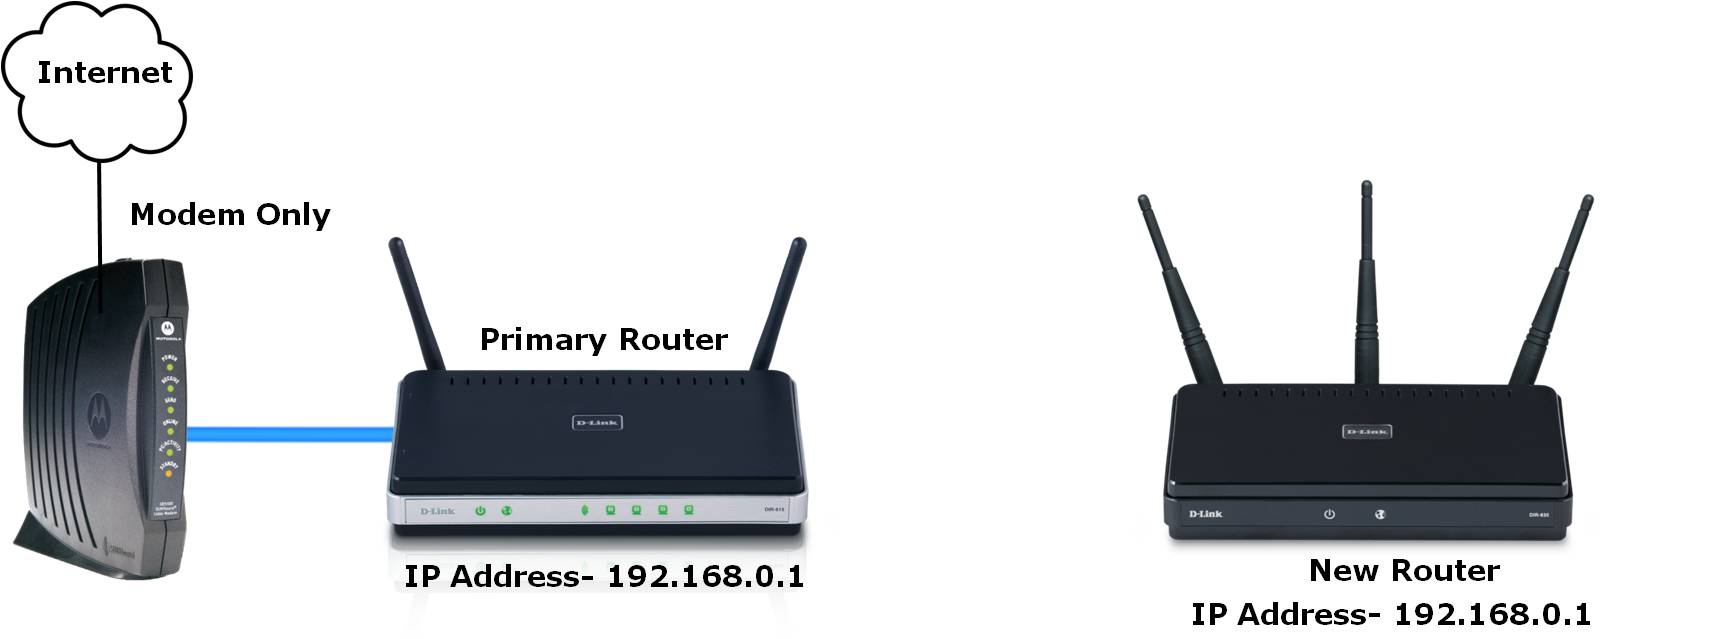 hight resolution of note do not connect the routers together until these settings have been changed